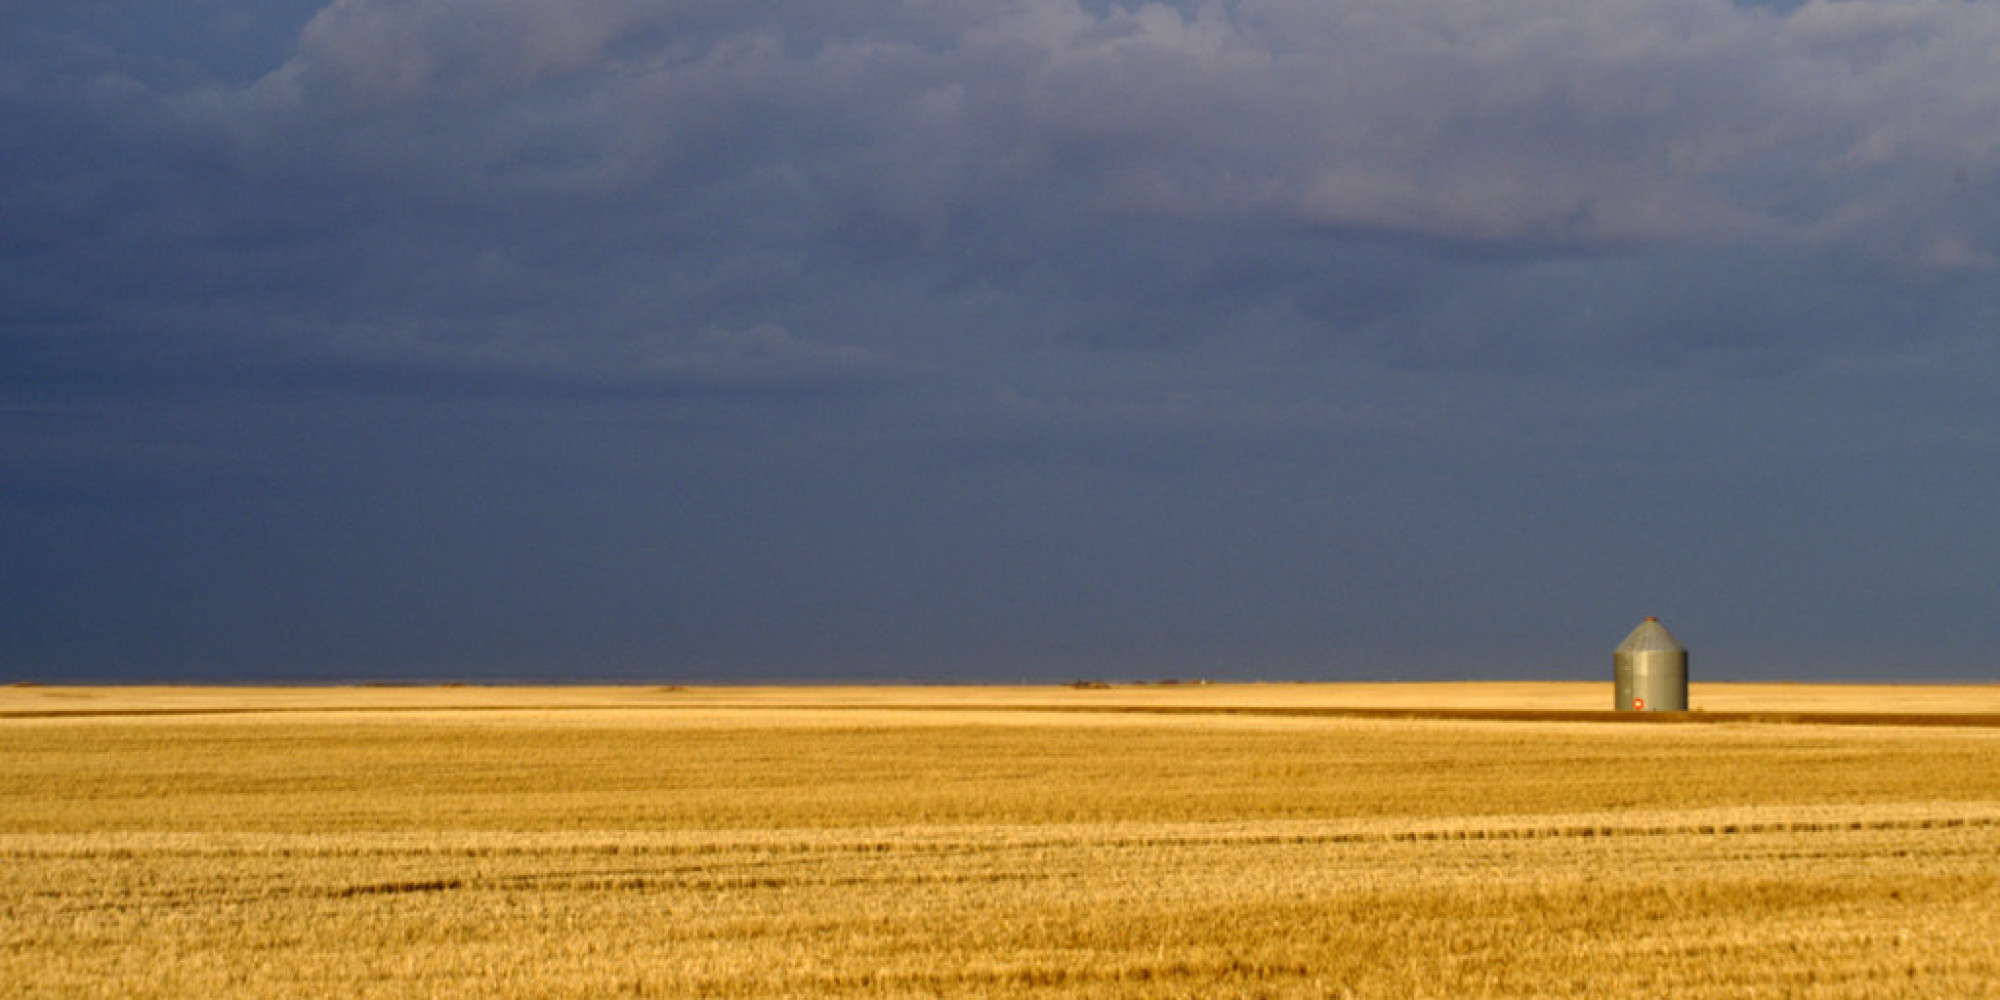 Drought Ridden Saskatchewan Faces Its Worst Harvest In Years